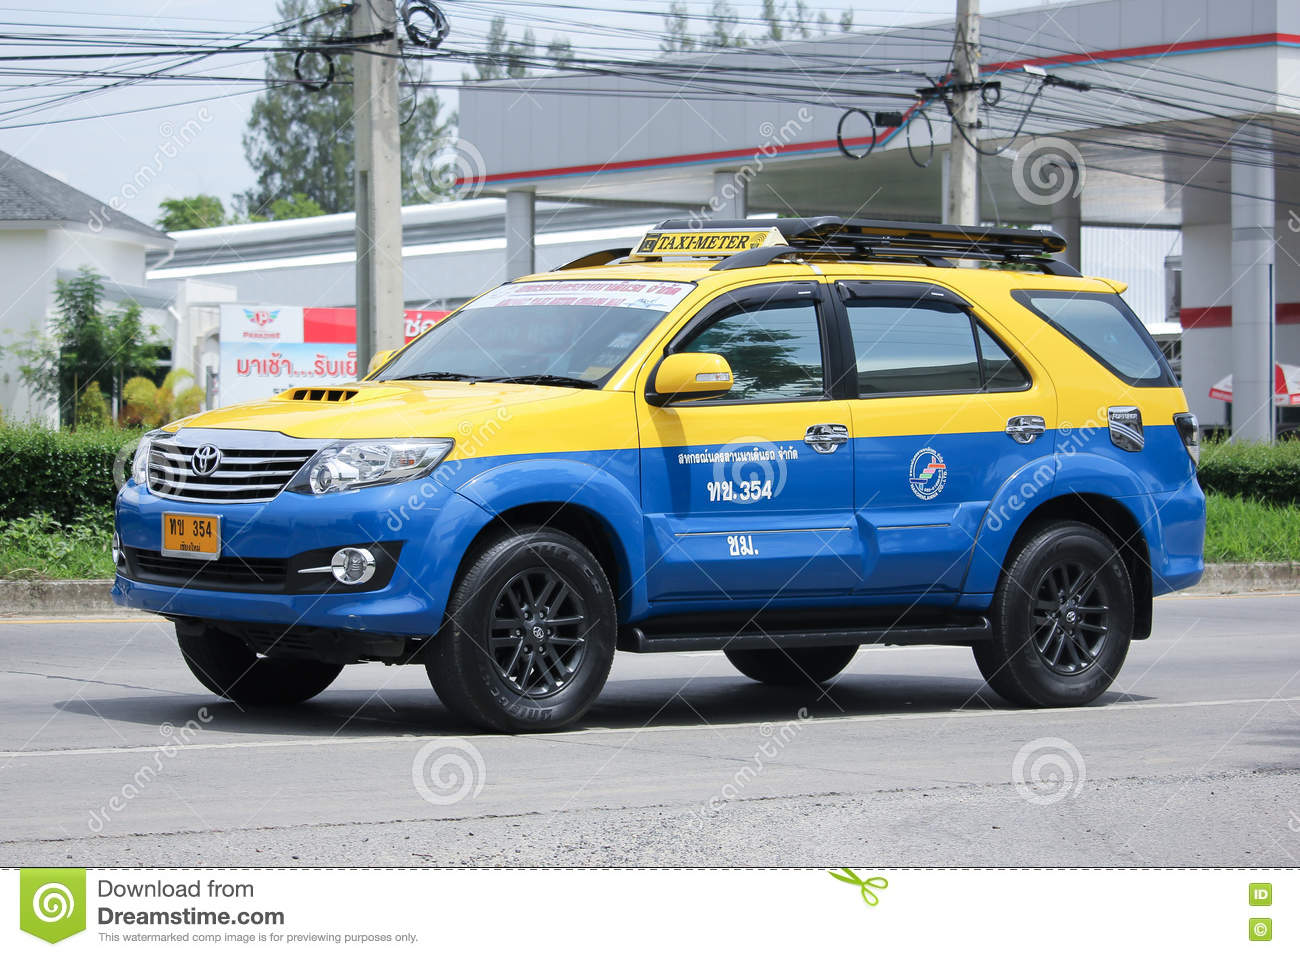 Taxi Meters Purchase : City taxi meter chiangmai toyota fortuner editorial photo